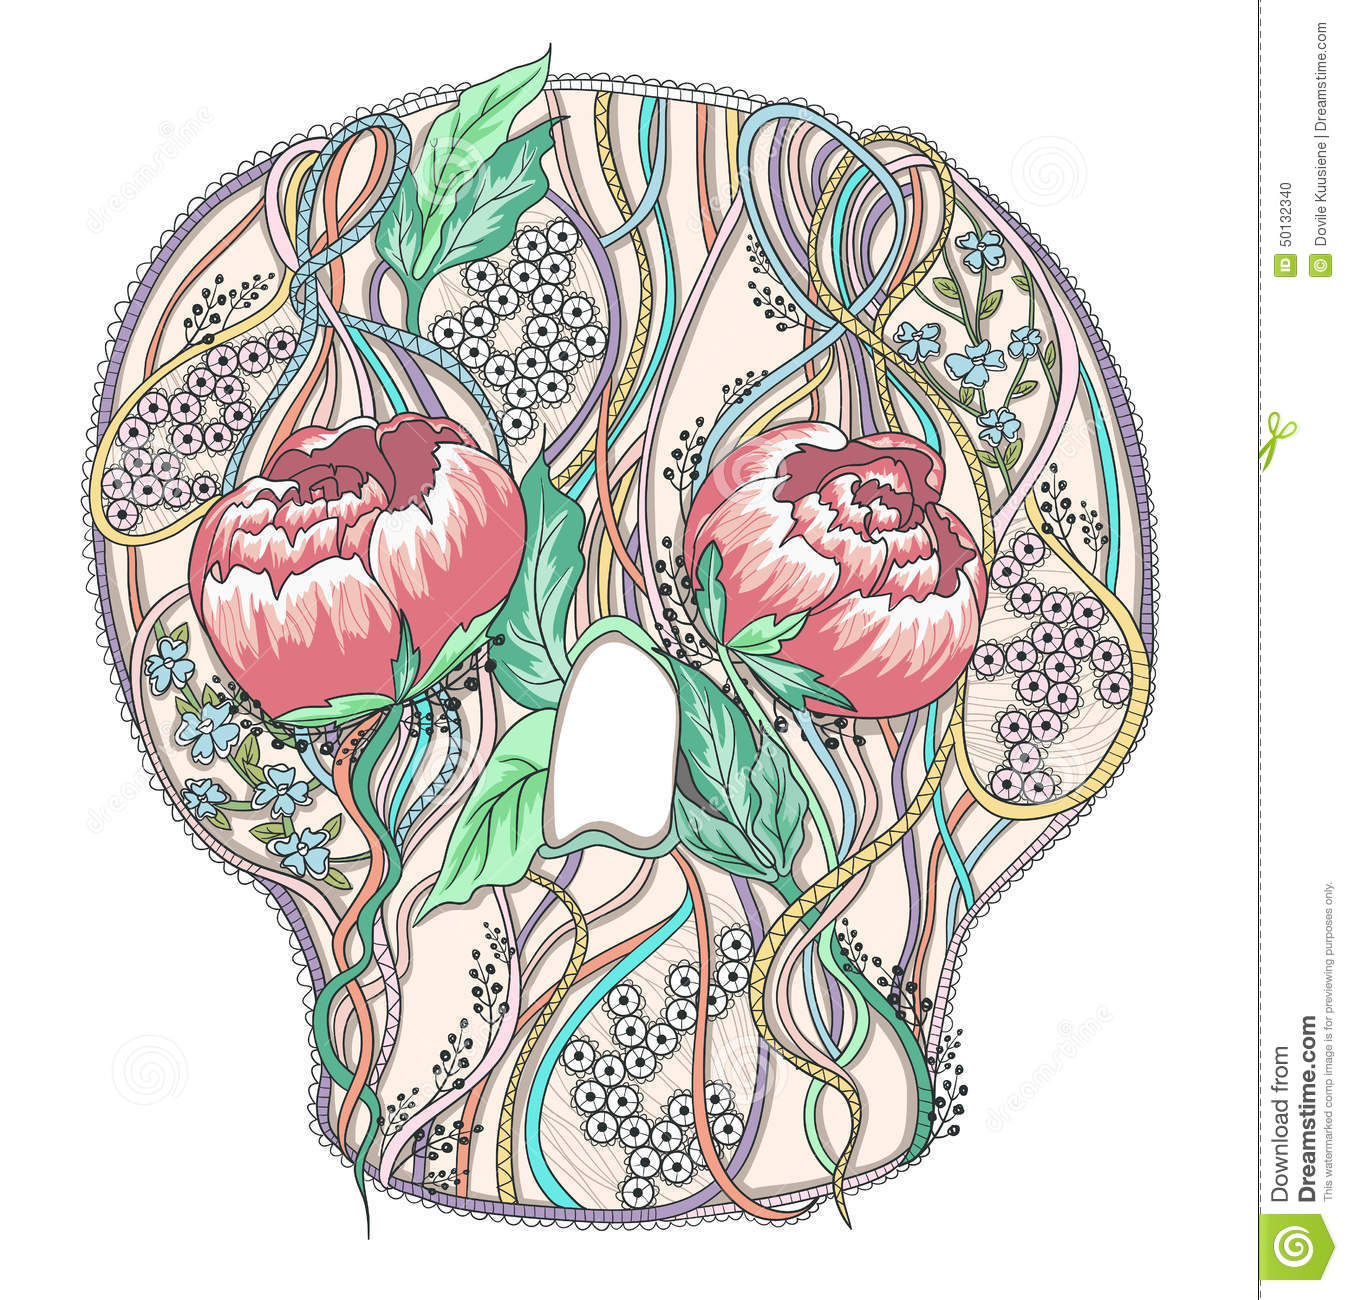 hight resolution of abstract skull with peony flowers